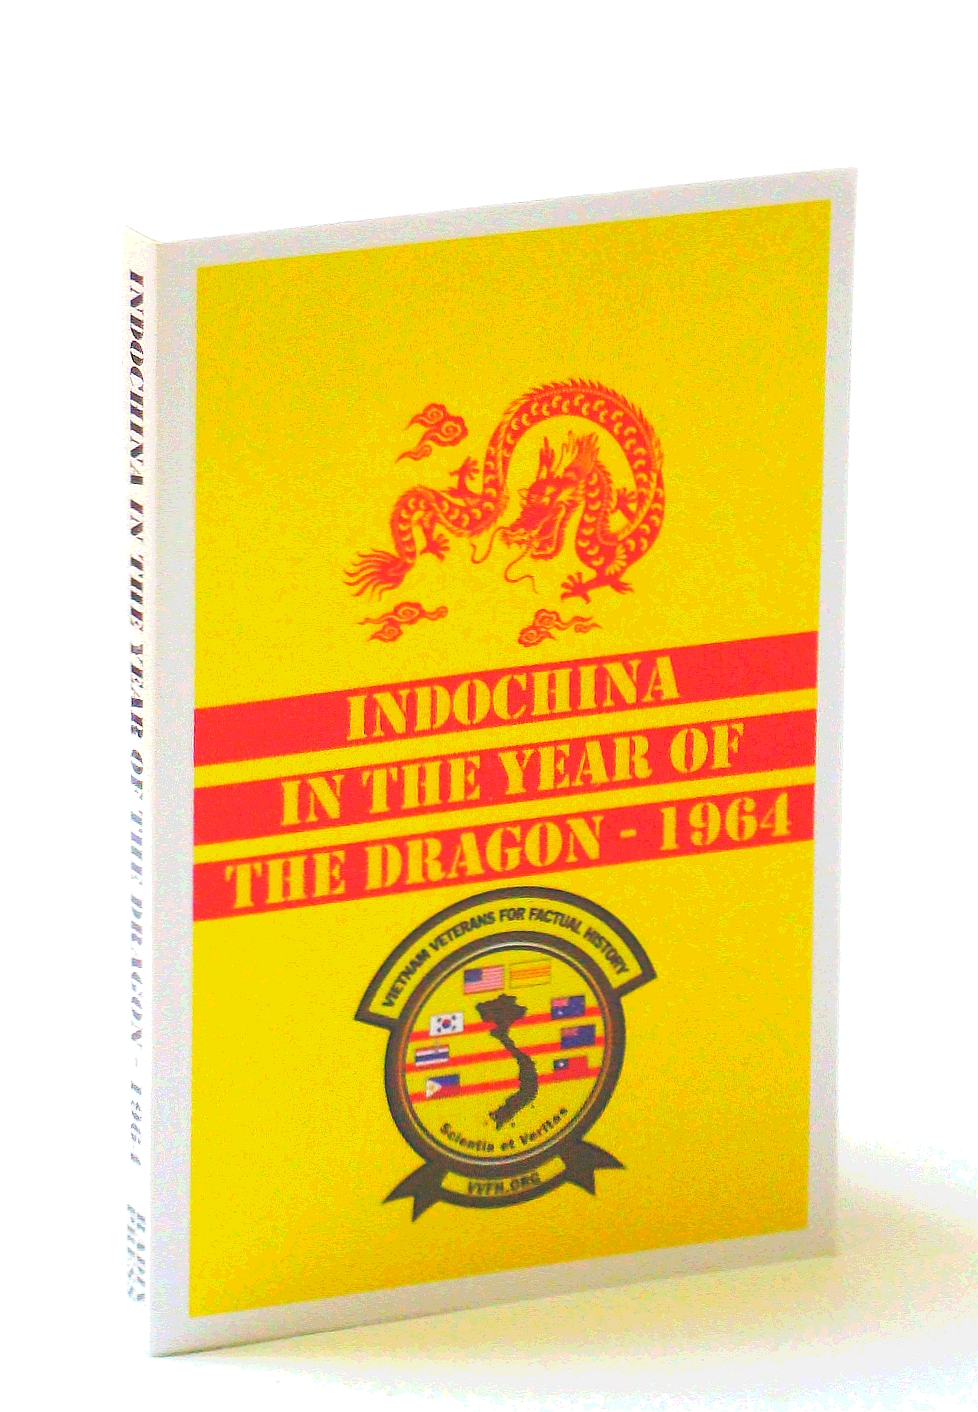 Image for Indochina in the Year of the Dragon - 1964